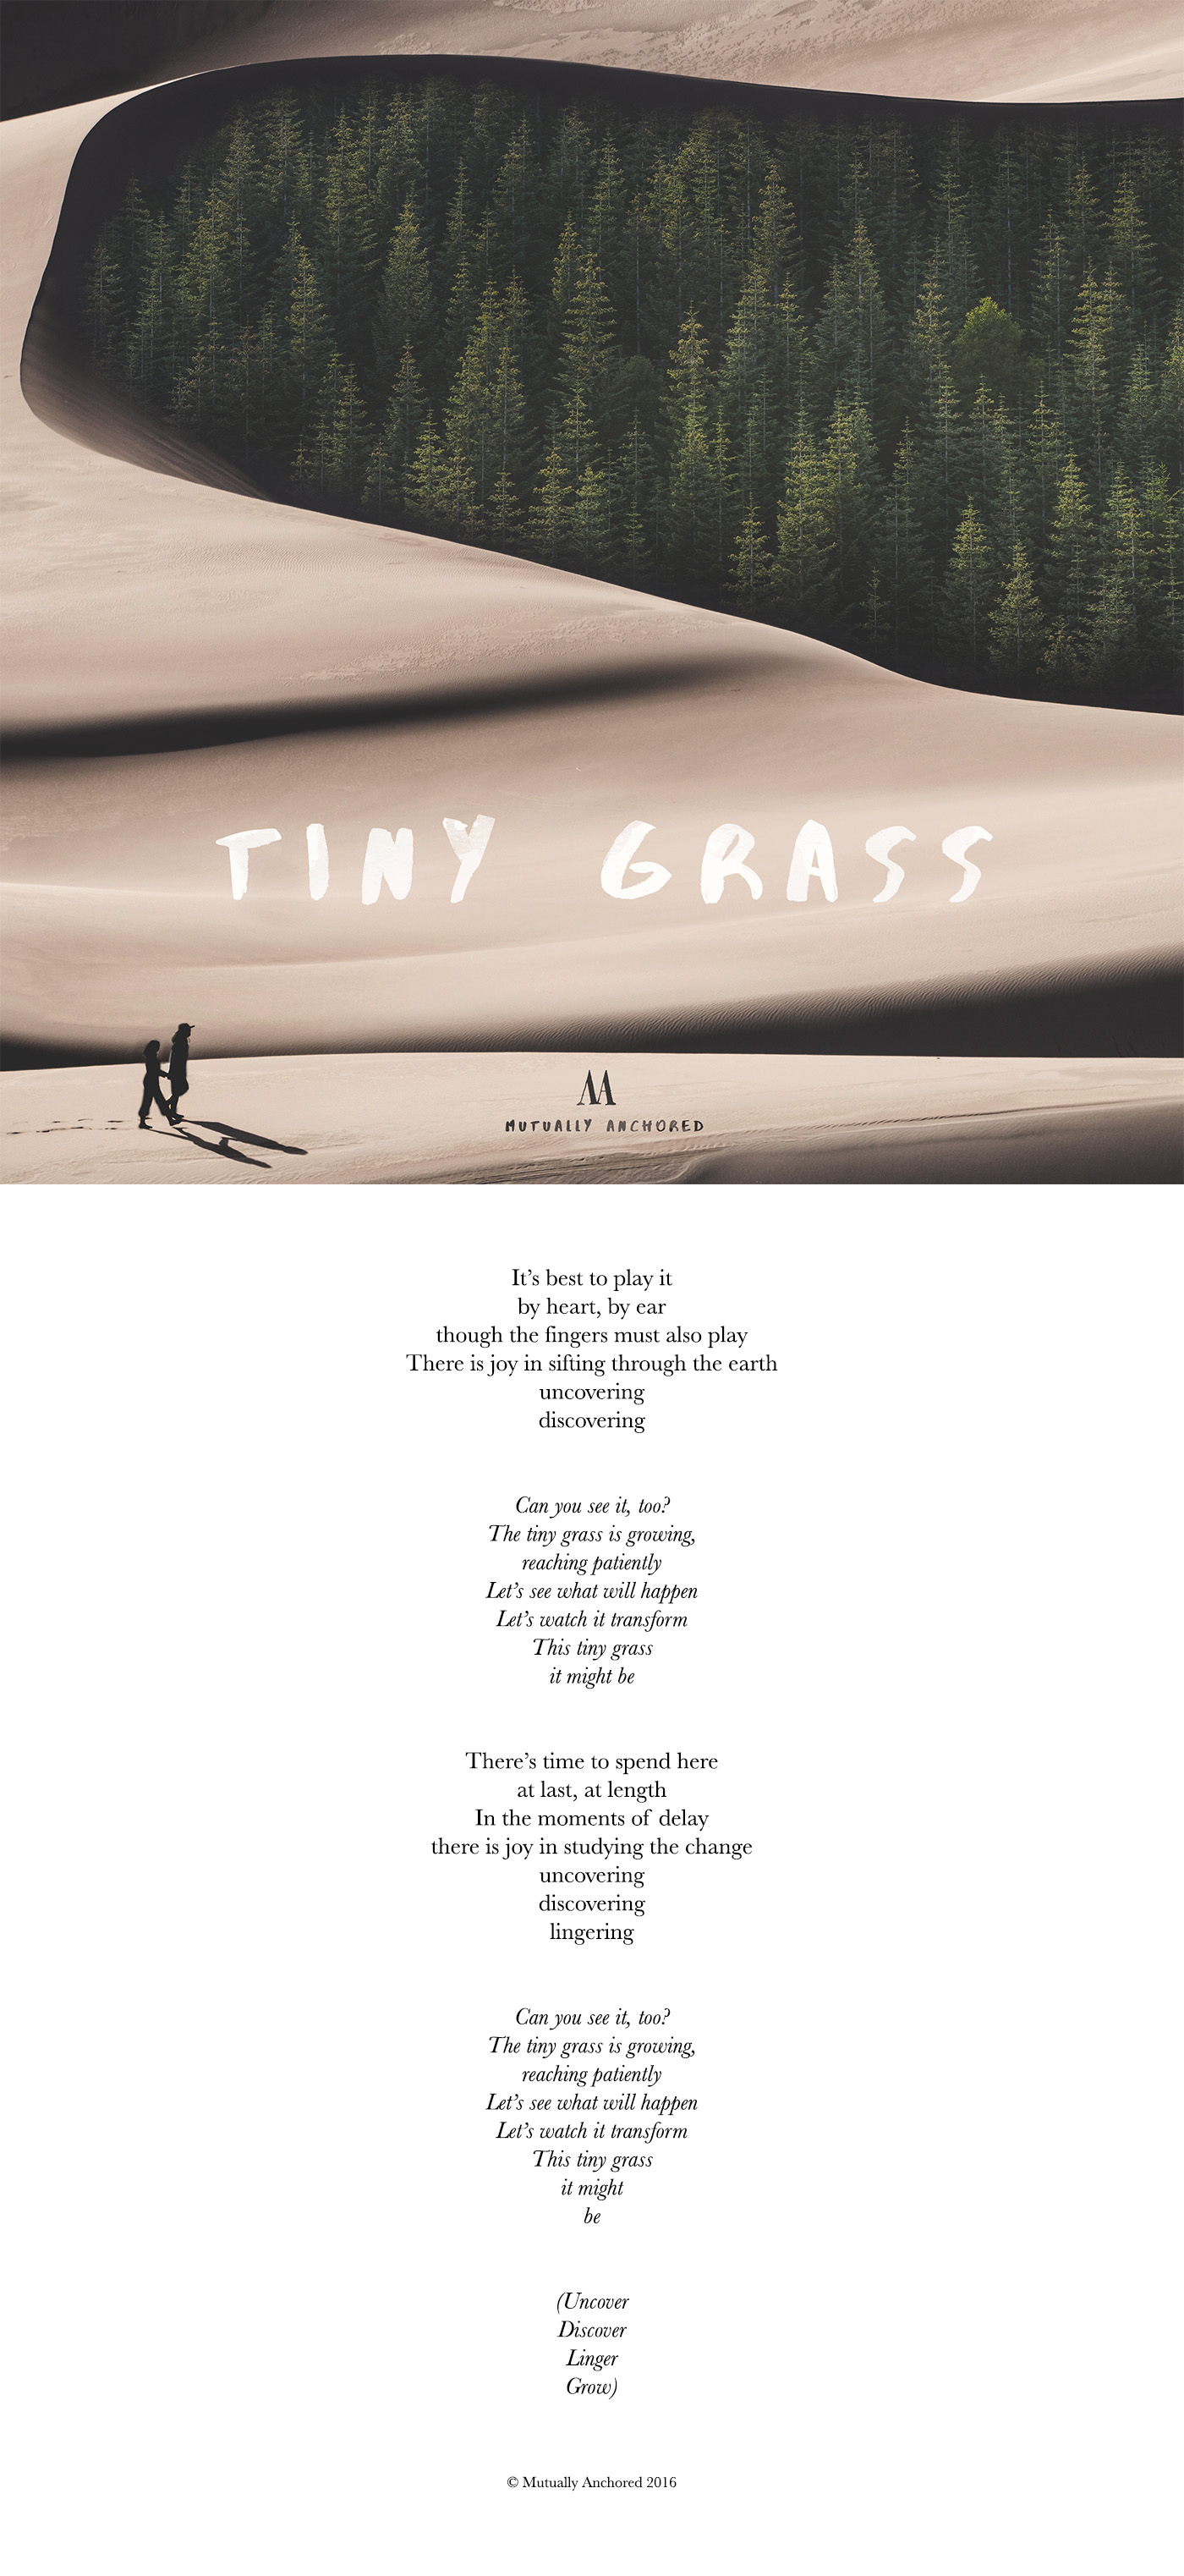 Mutually Anchored Tiny Grass lyrics